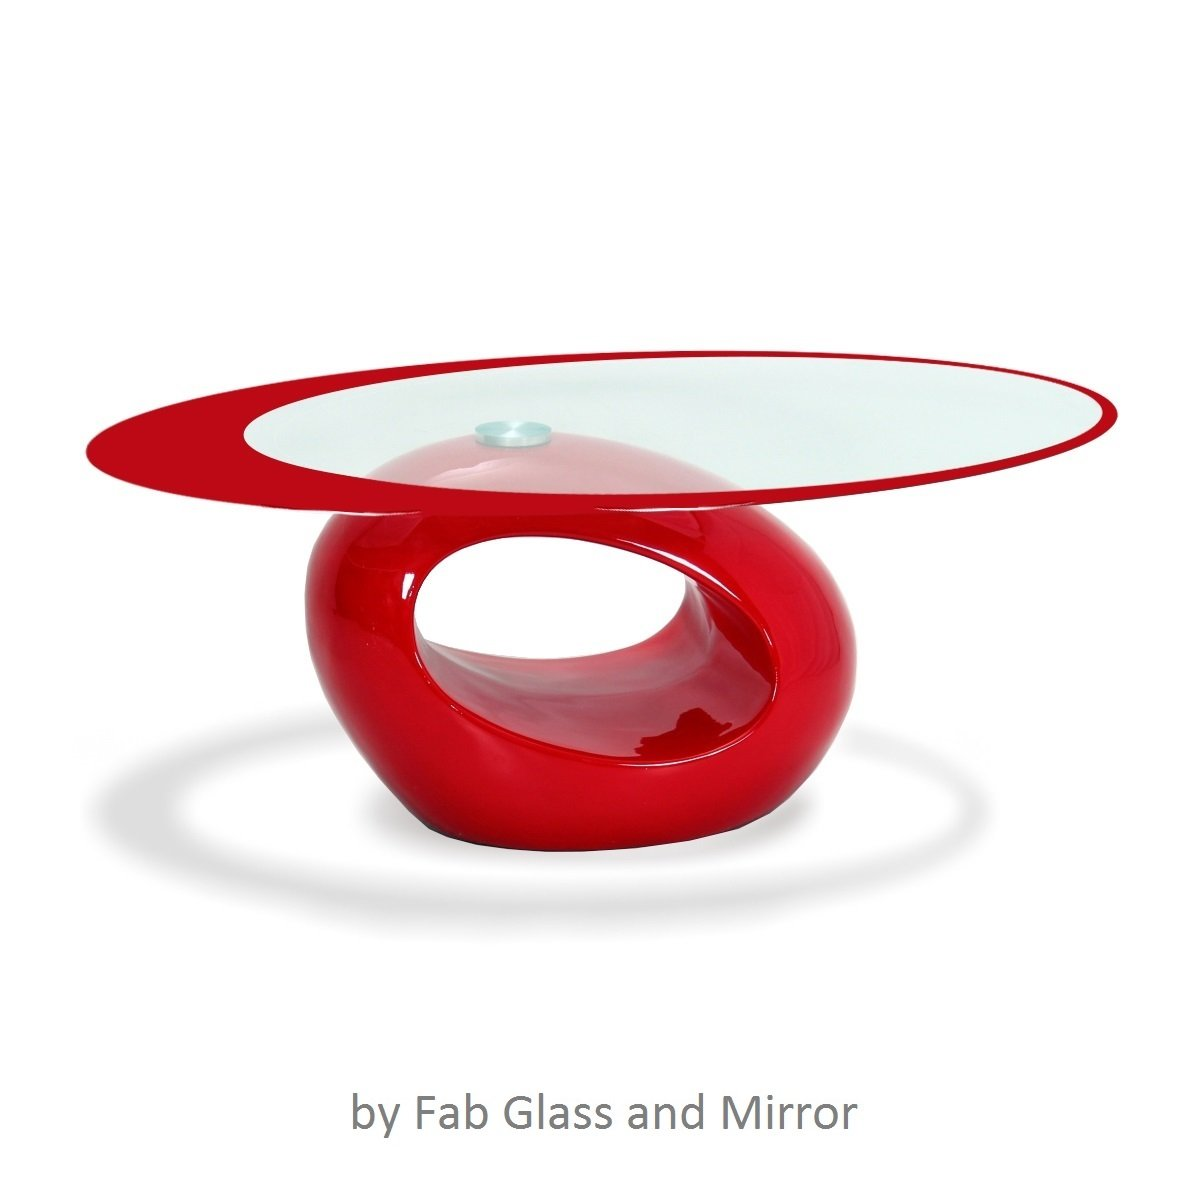 Fab Glass and Mirror Stylish Oval Shape Coffee Table, Red